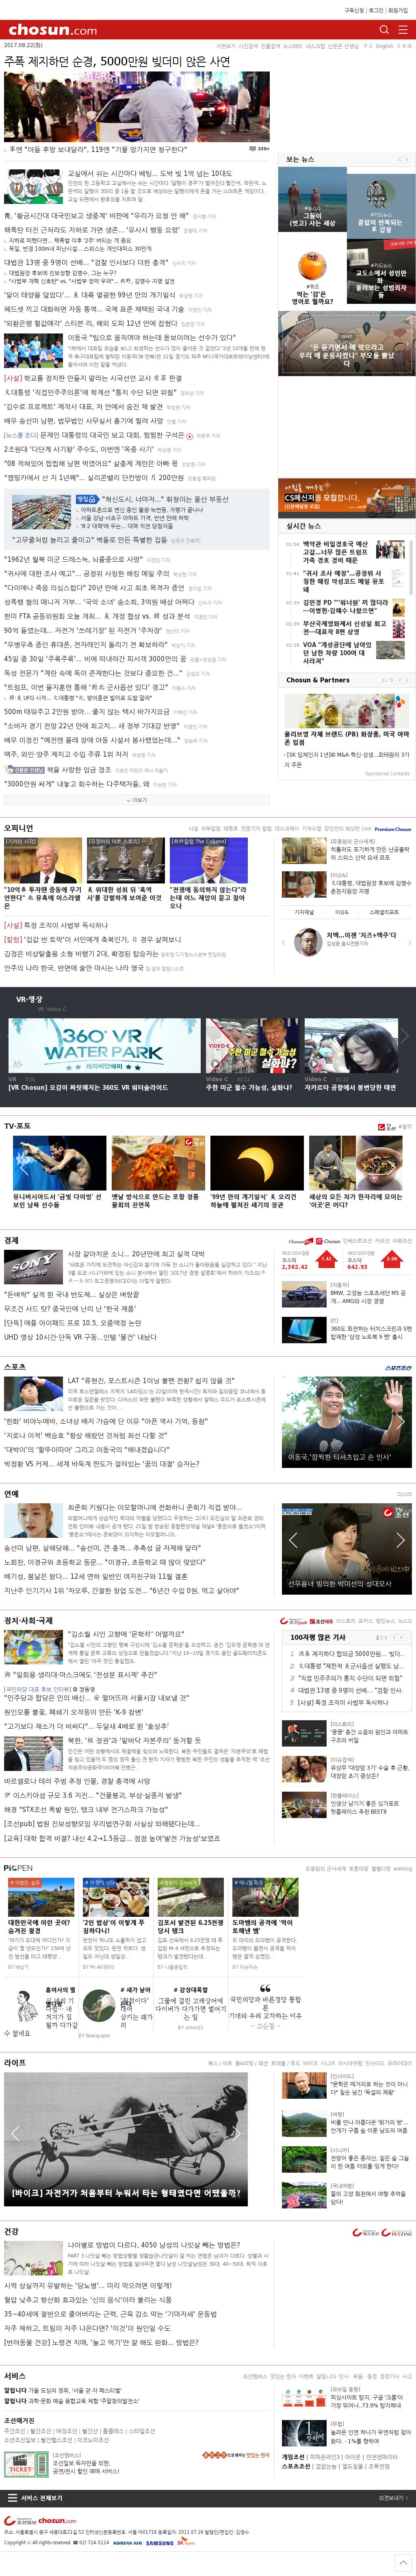 chosun.com at Tuesday Aug. 22, 2017, 2:01 a.m. UTC